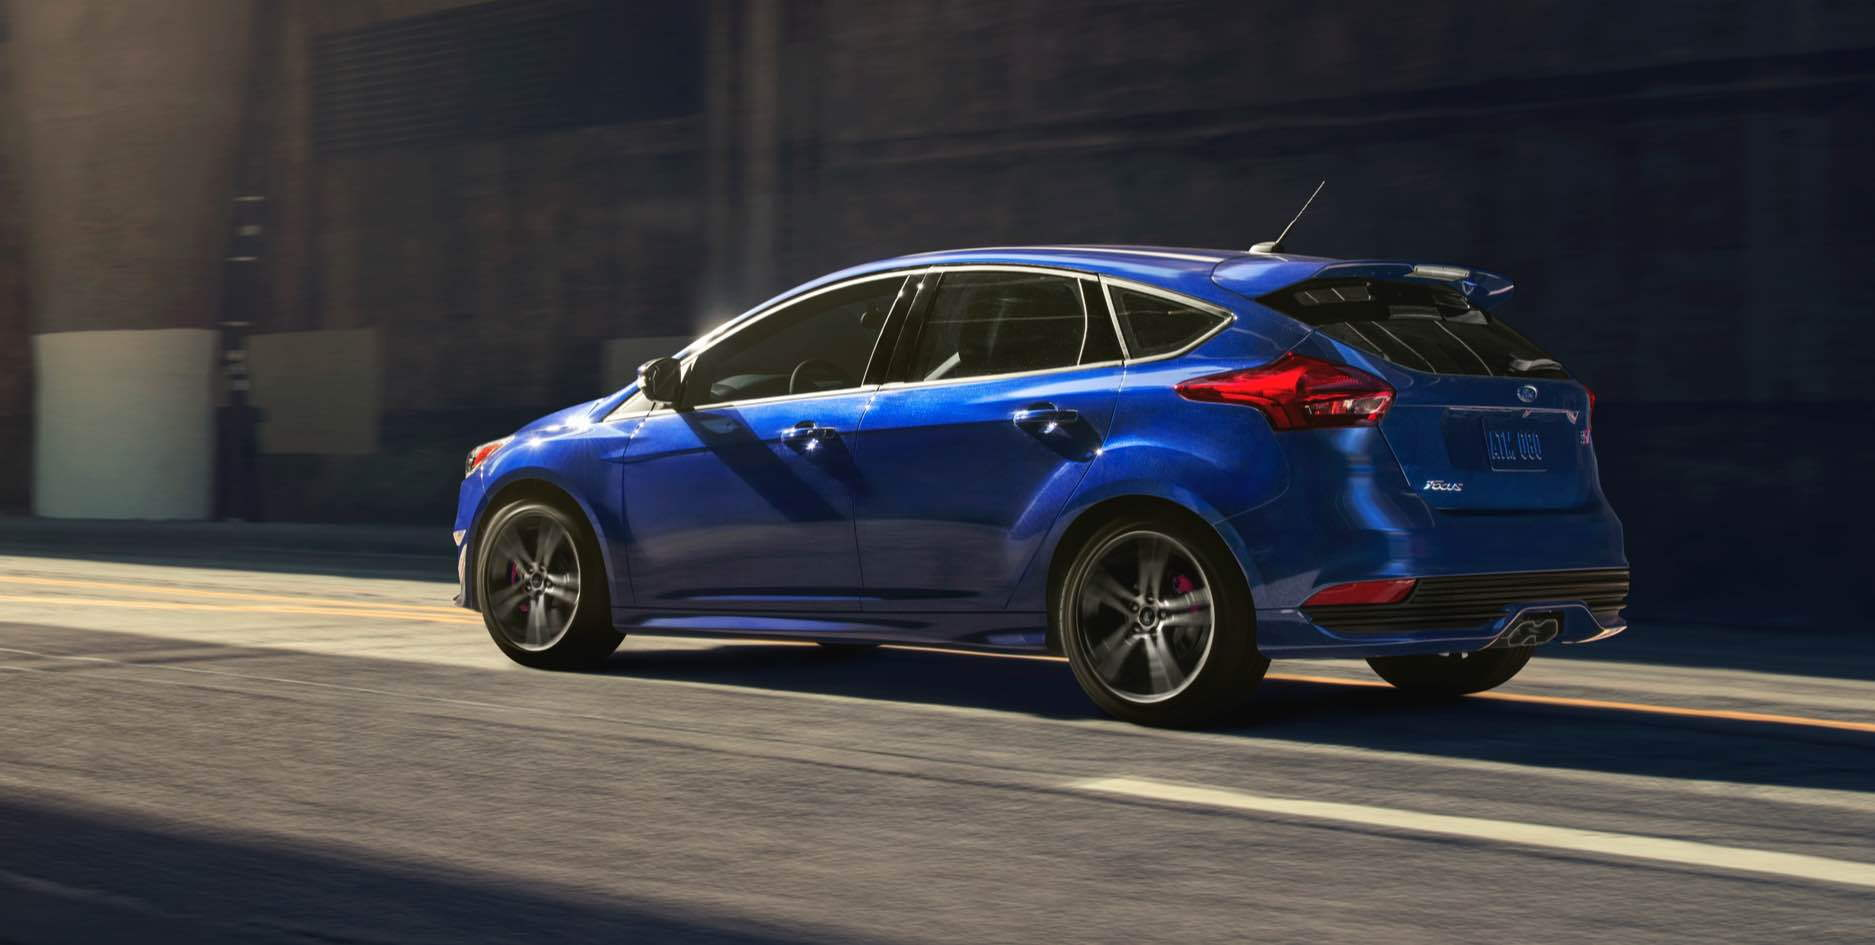 2018 ford focus st deals prices incentives leases overview carsdirect. Black Bedroom Furniture Sets. Home Design Ideas